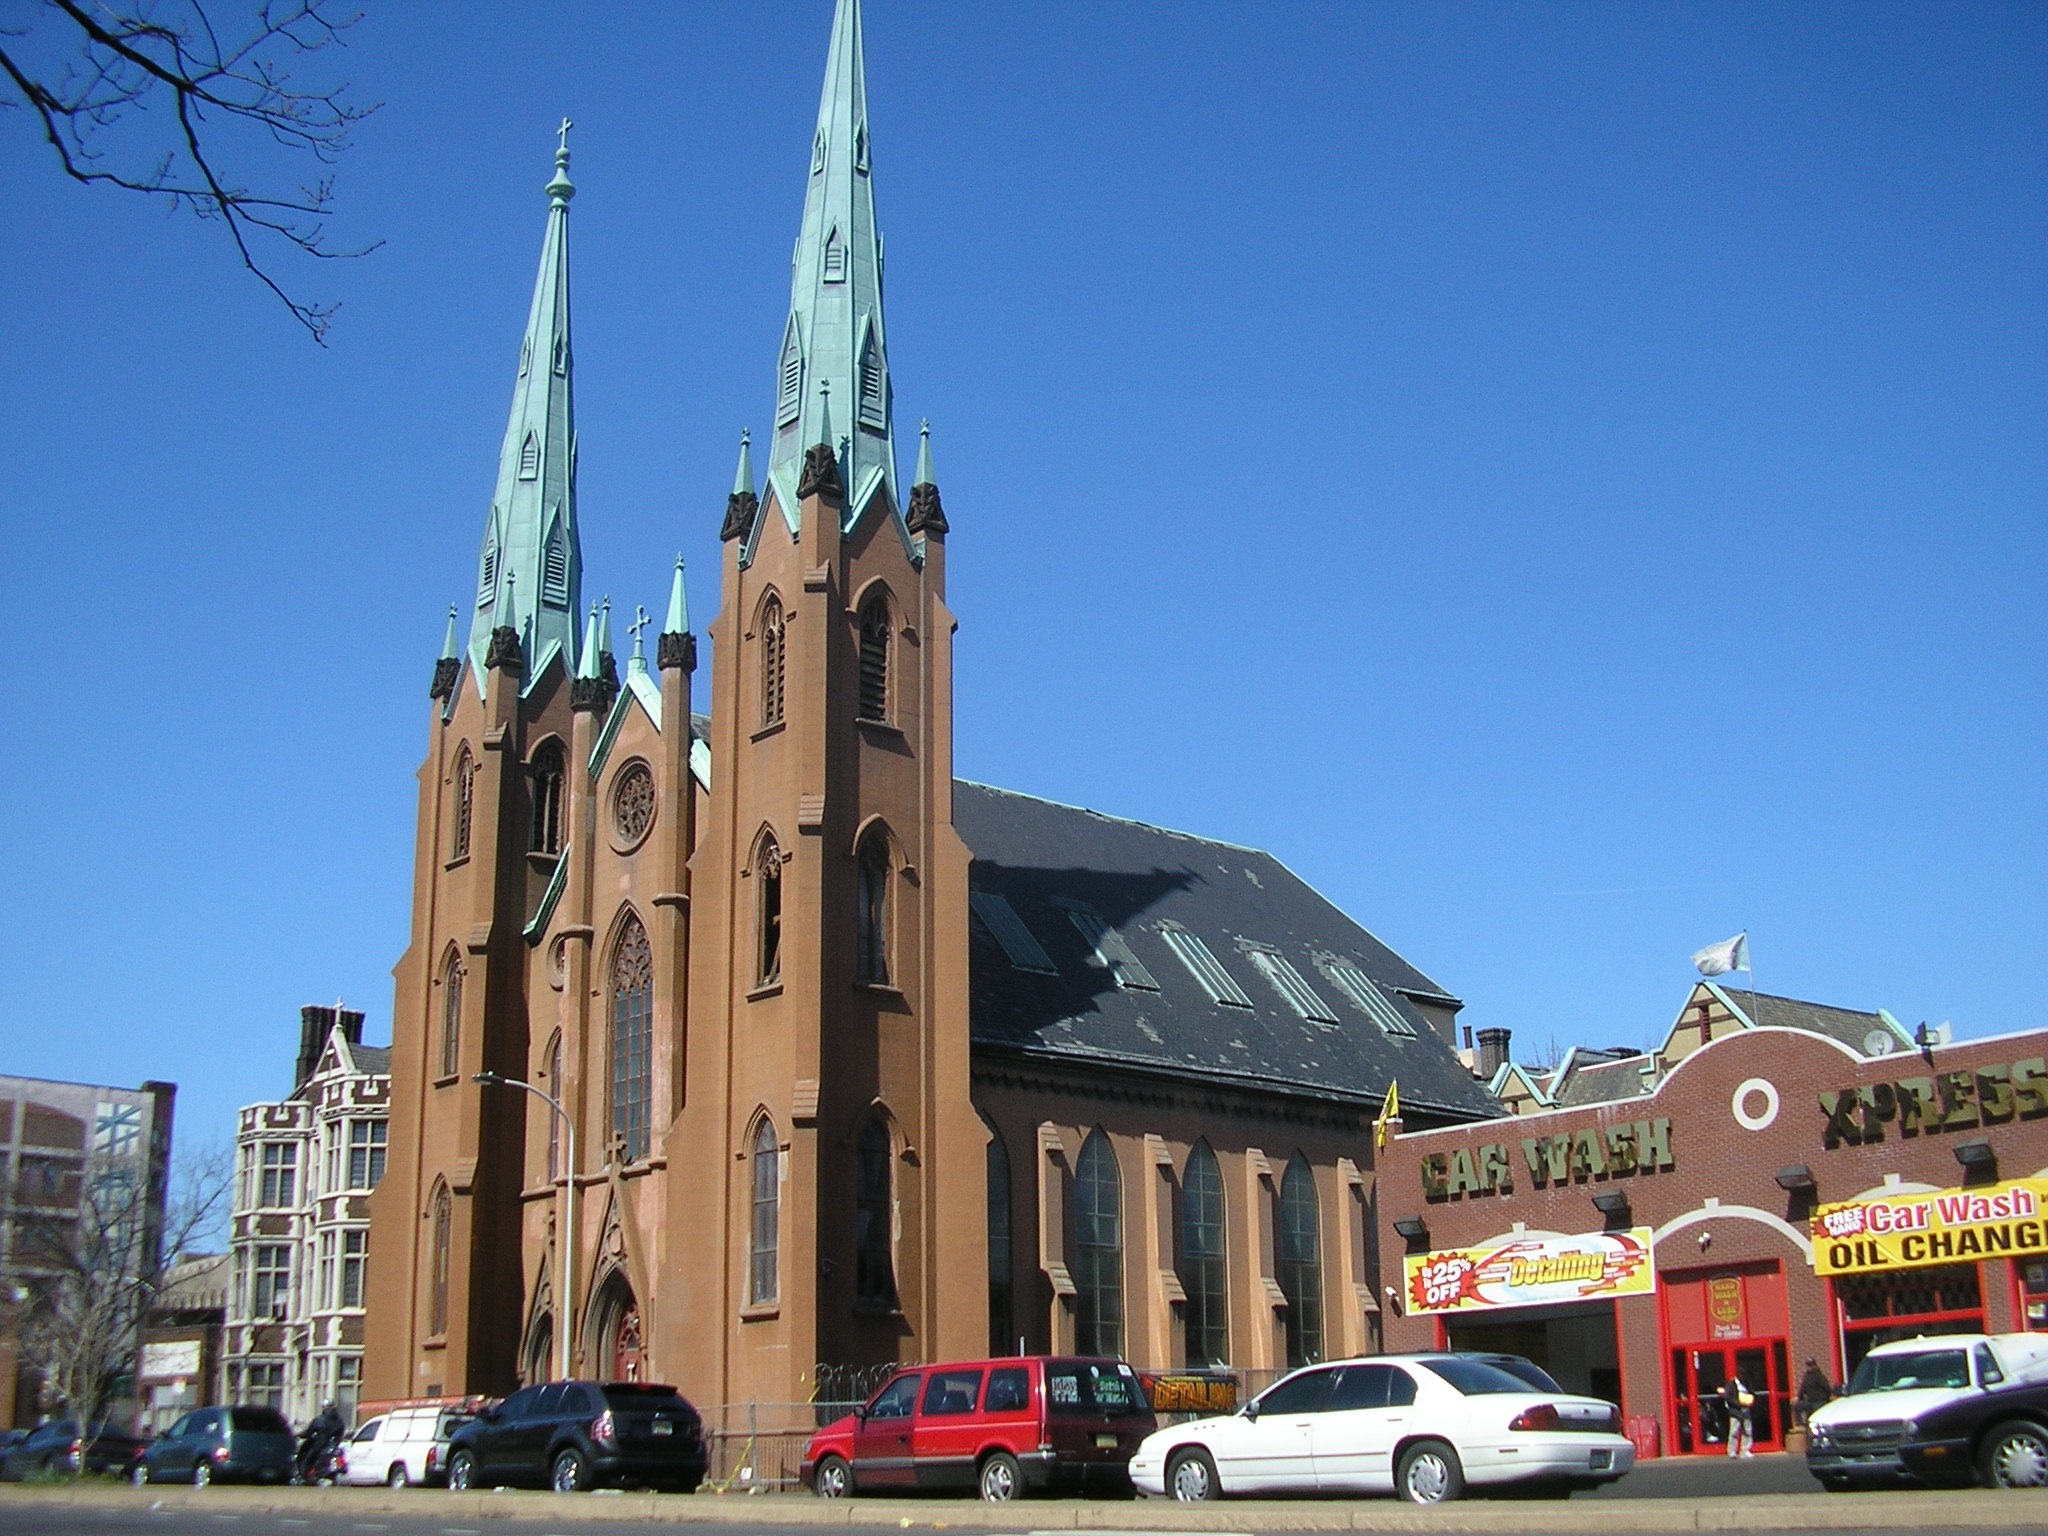 The Church of the Assumption, on the 1100 block of Spring Garden, is a neighborhood landmark.